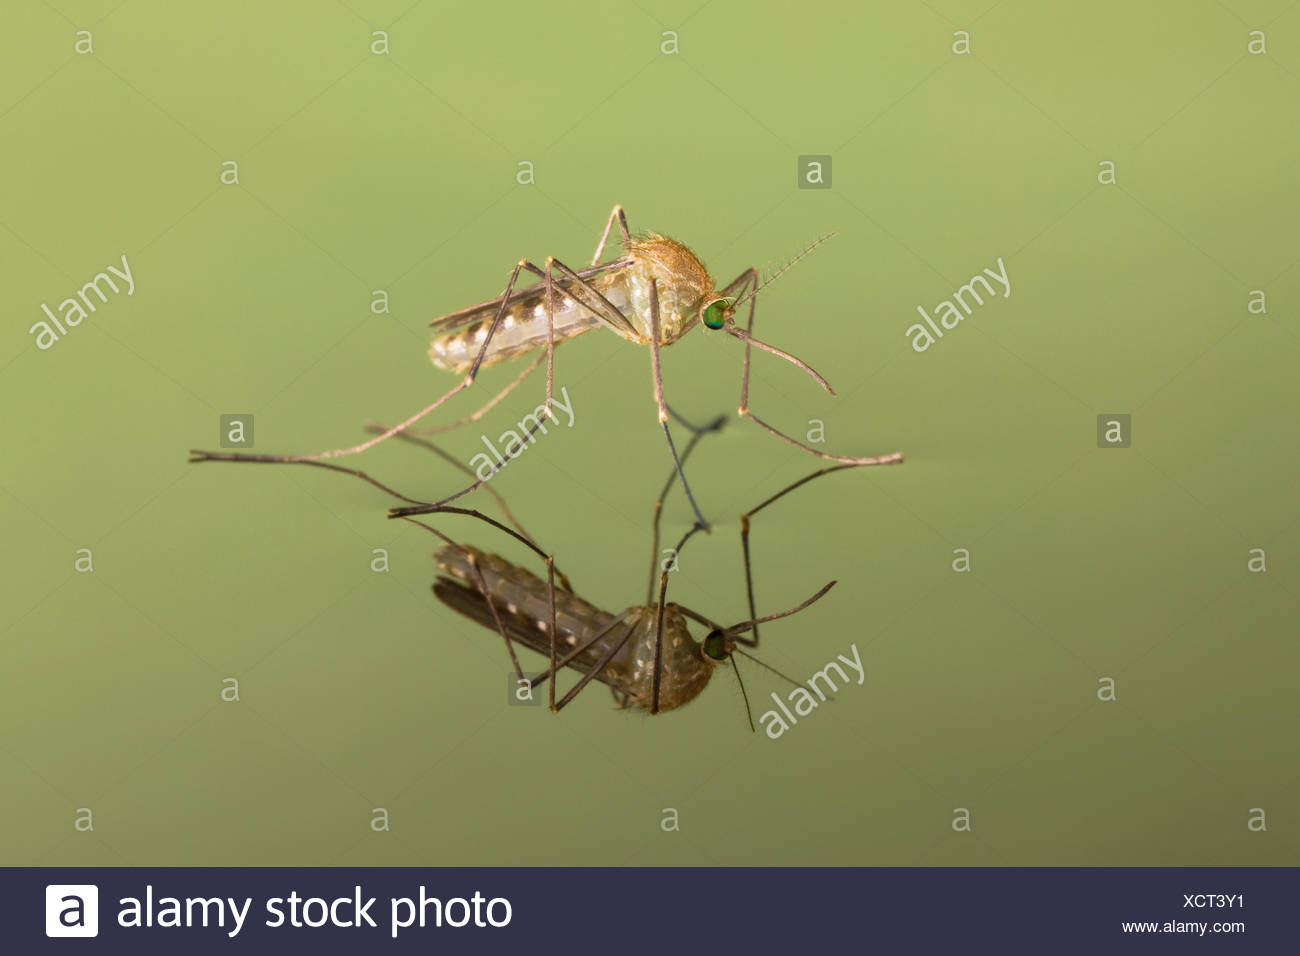 Mosquito (Culicidae) freshly hatched sitting on water surface with reflection, Germany. - Stock Image